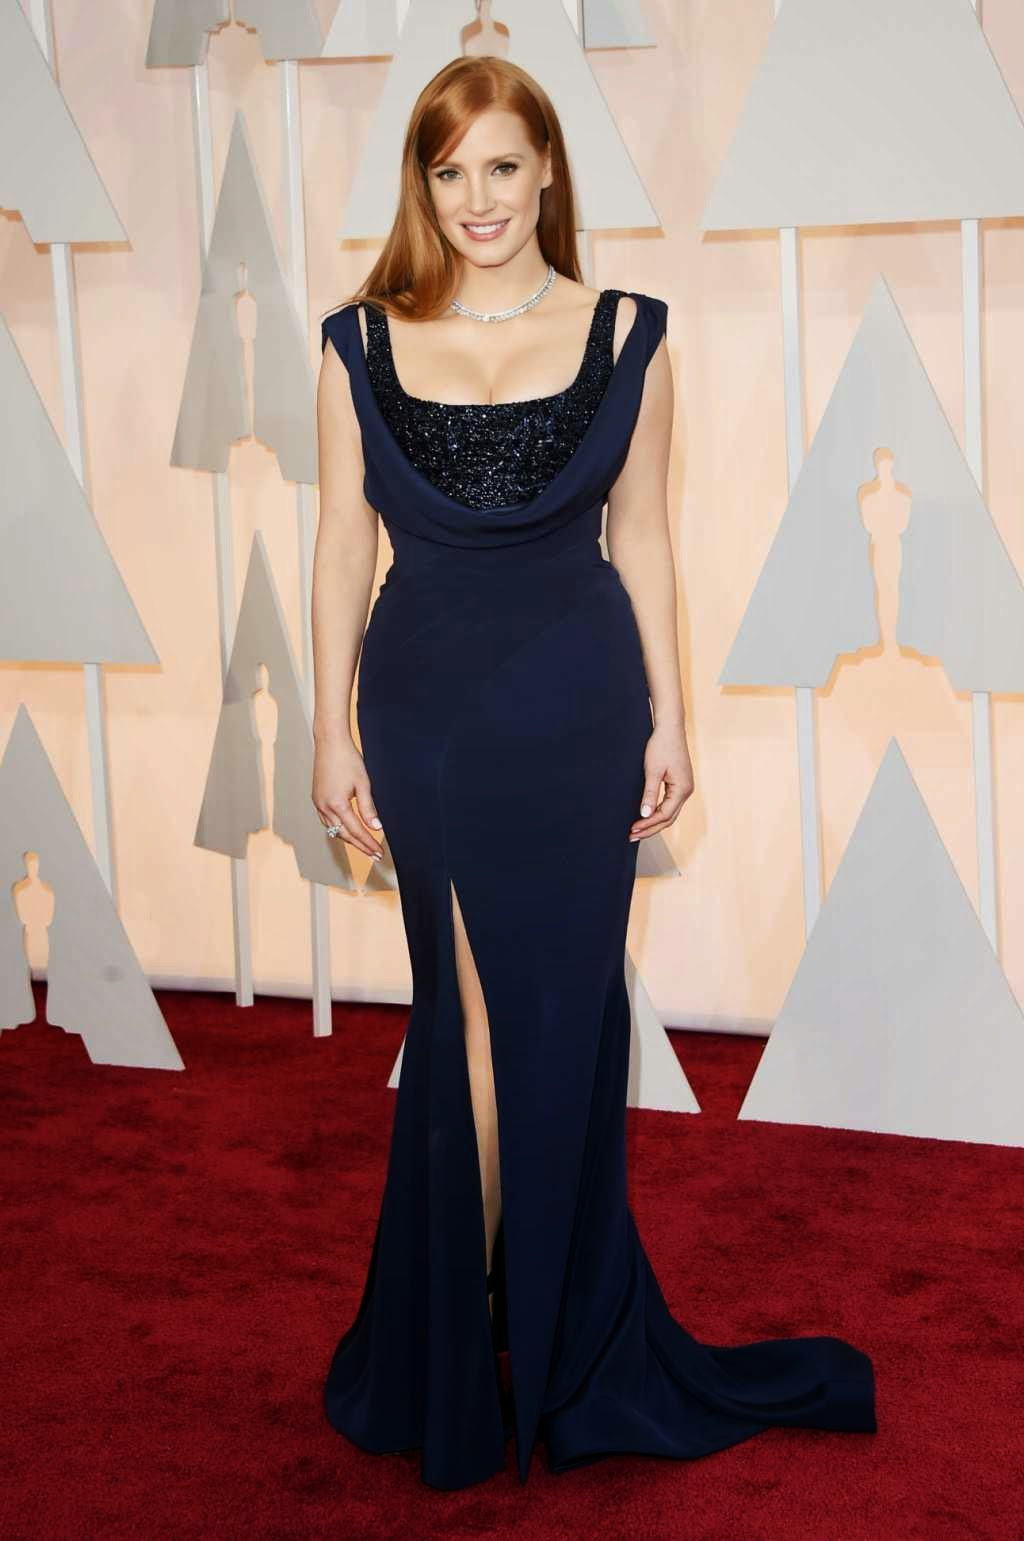 Jessica Chastain is glamorous in Givenchy Couture at the 2015 Oscars in Hollywood